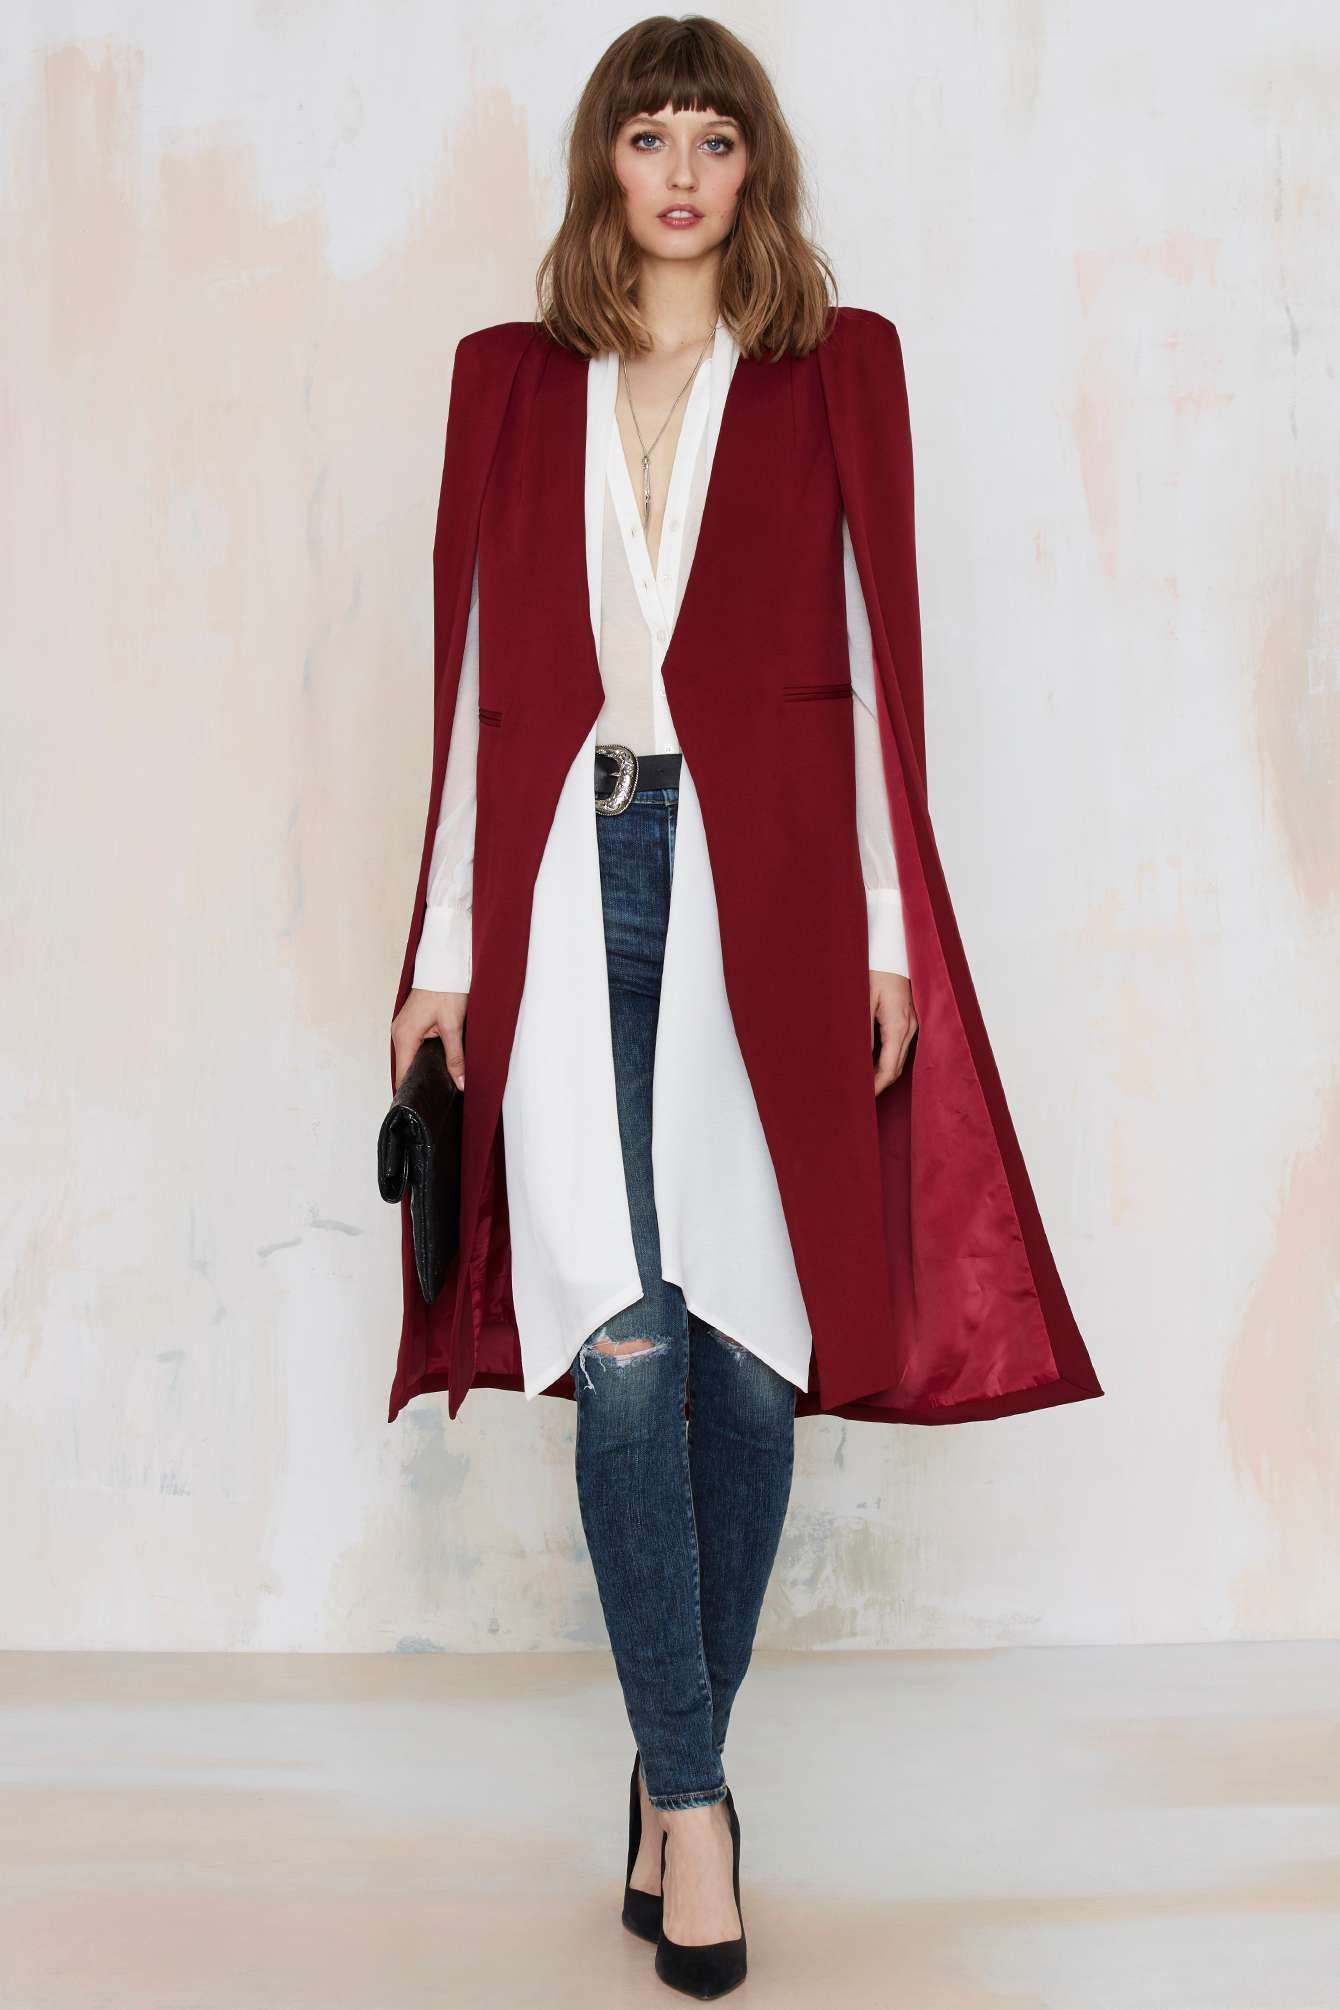 Lavish Alice On the Fly Cape Jacket - Burgundy | Shop Clothes at Nasty Gal!